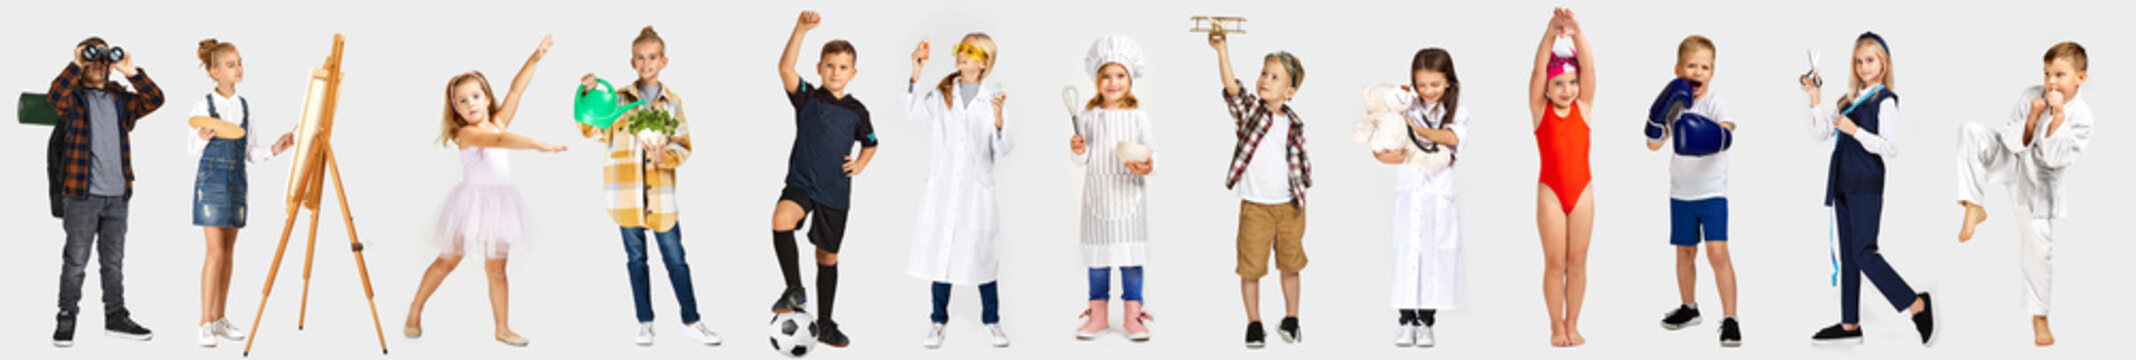 children dream of the future. Little child girl and boy want to become football player, ballerina, doctor, scientist, chef, tailor, artist, swimmer, gardener, boxer or pilot.